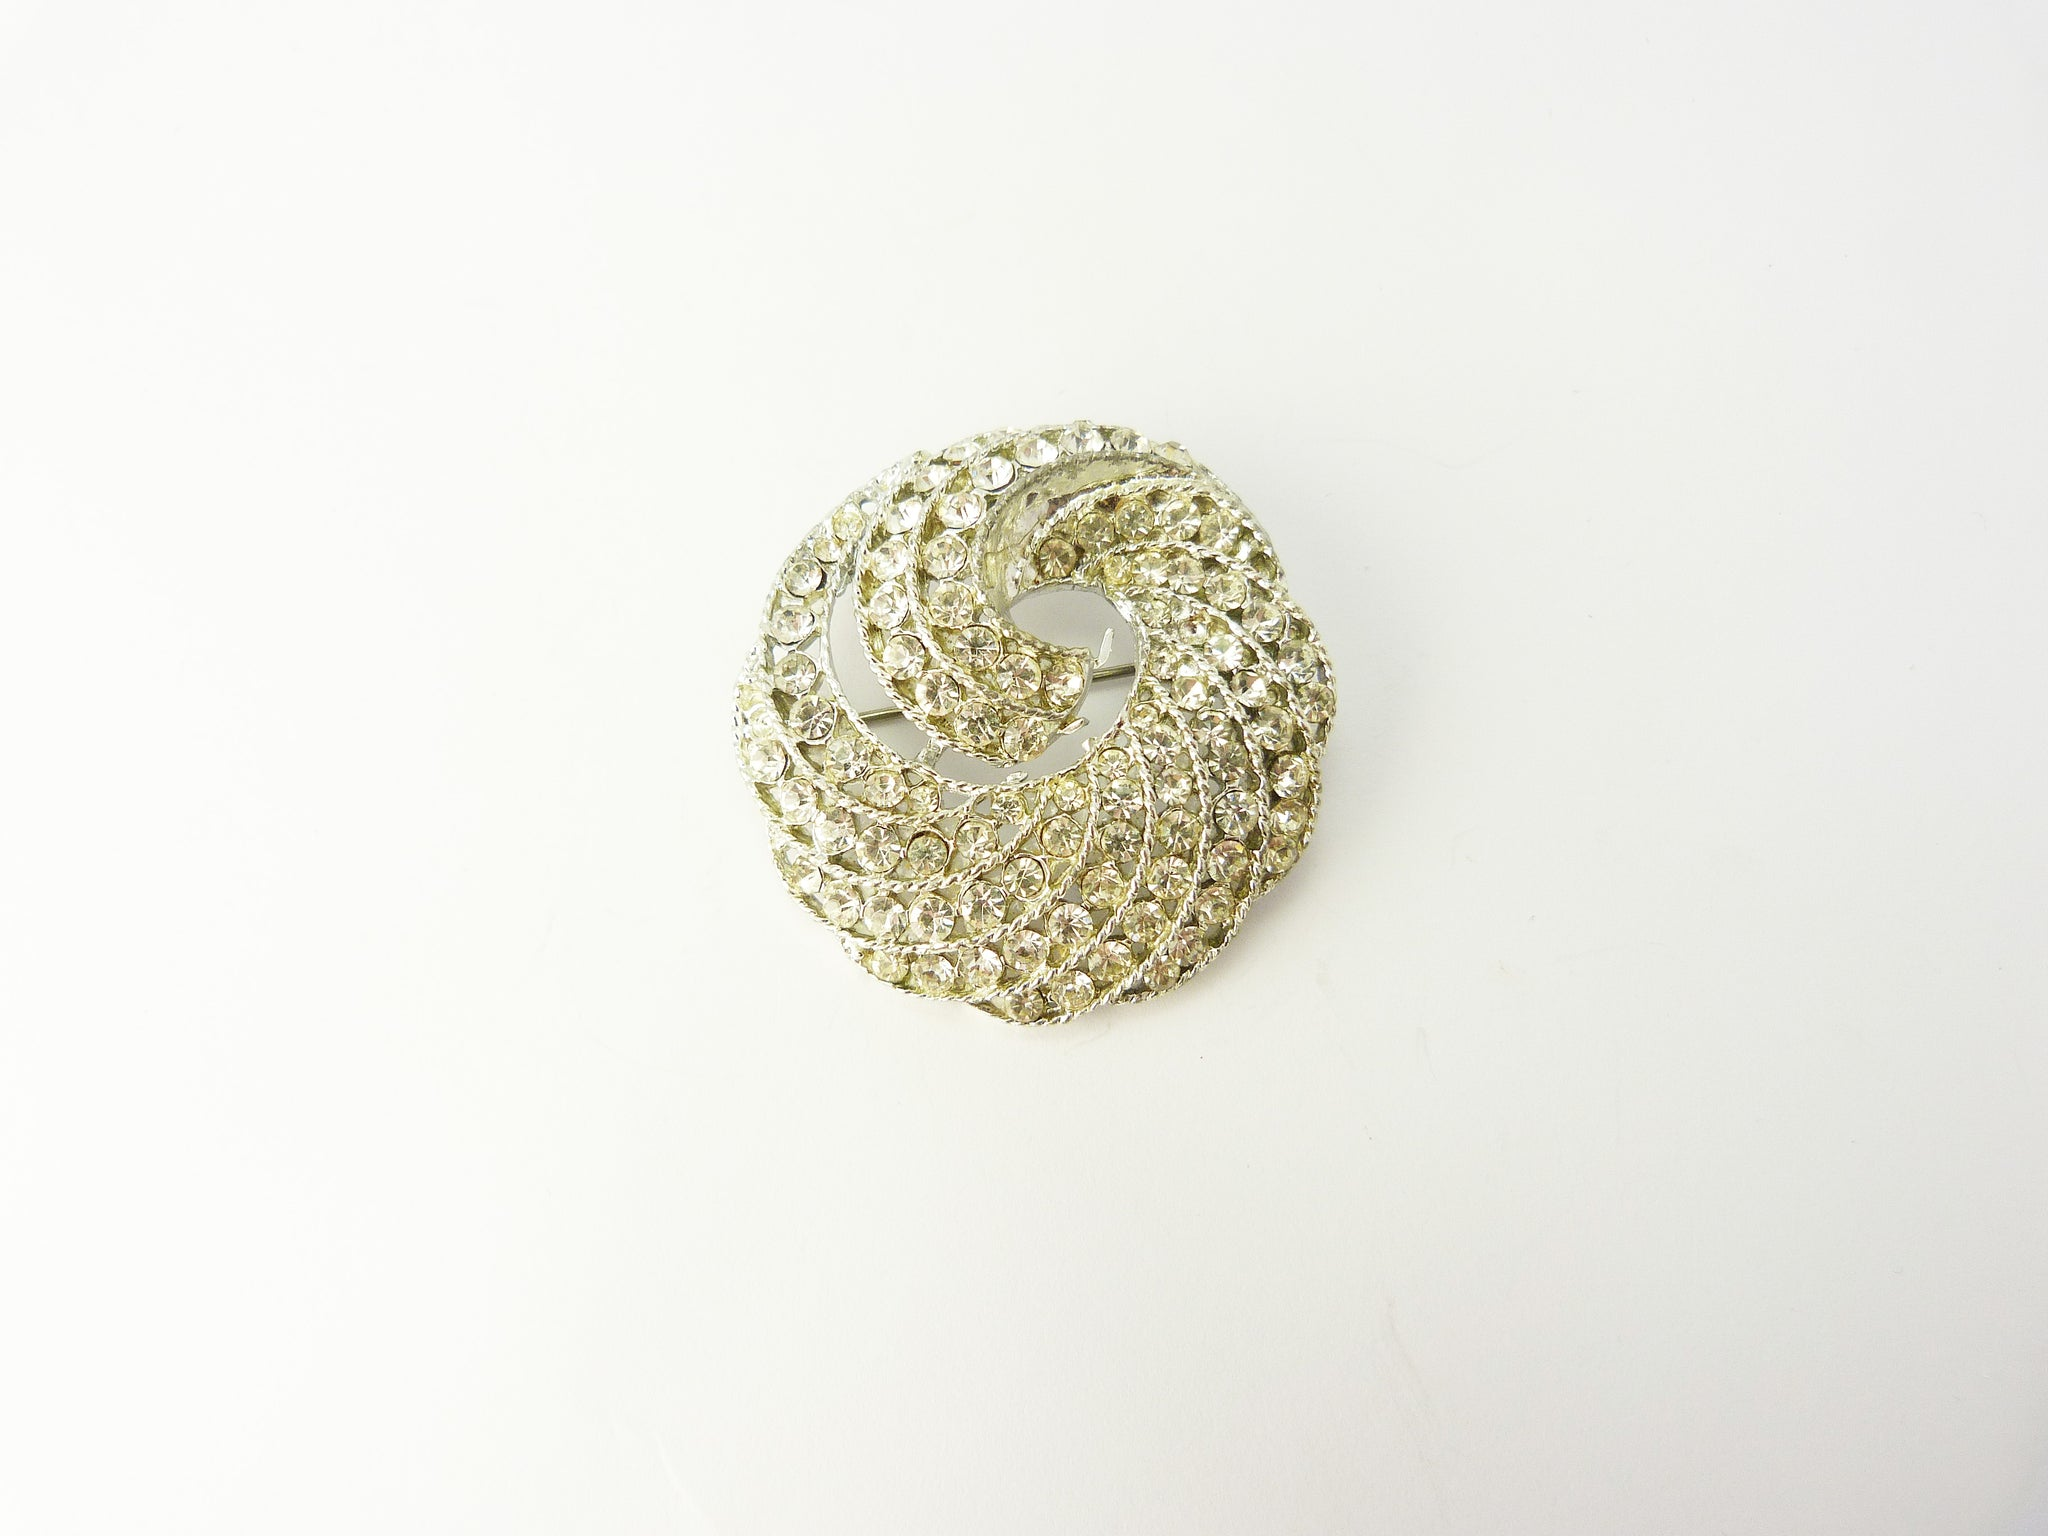 Vintage Clear Rhinestone Circular Spiral Swirl Brooch - 1950's Crystal Diamante Brooch - Faux Diamond Wedding Bridal Brooch